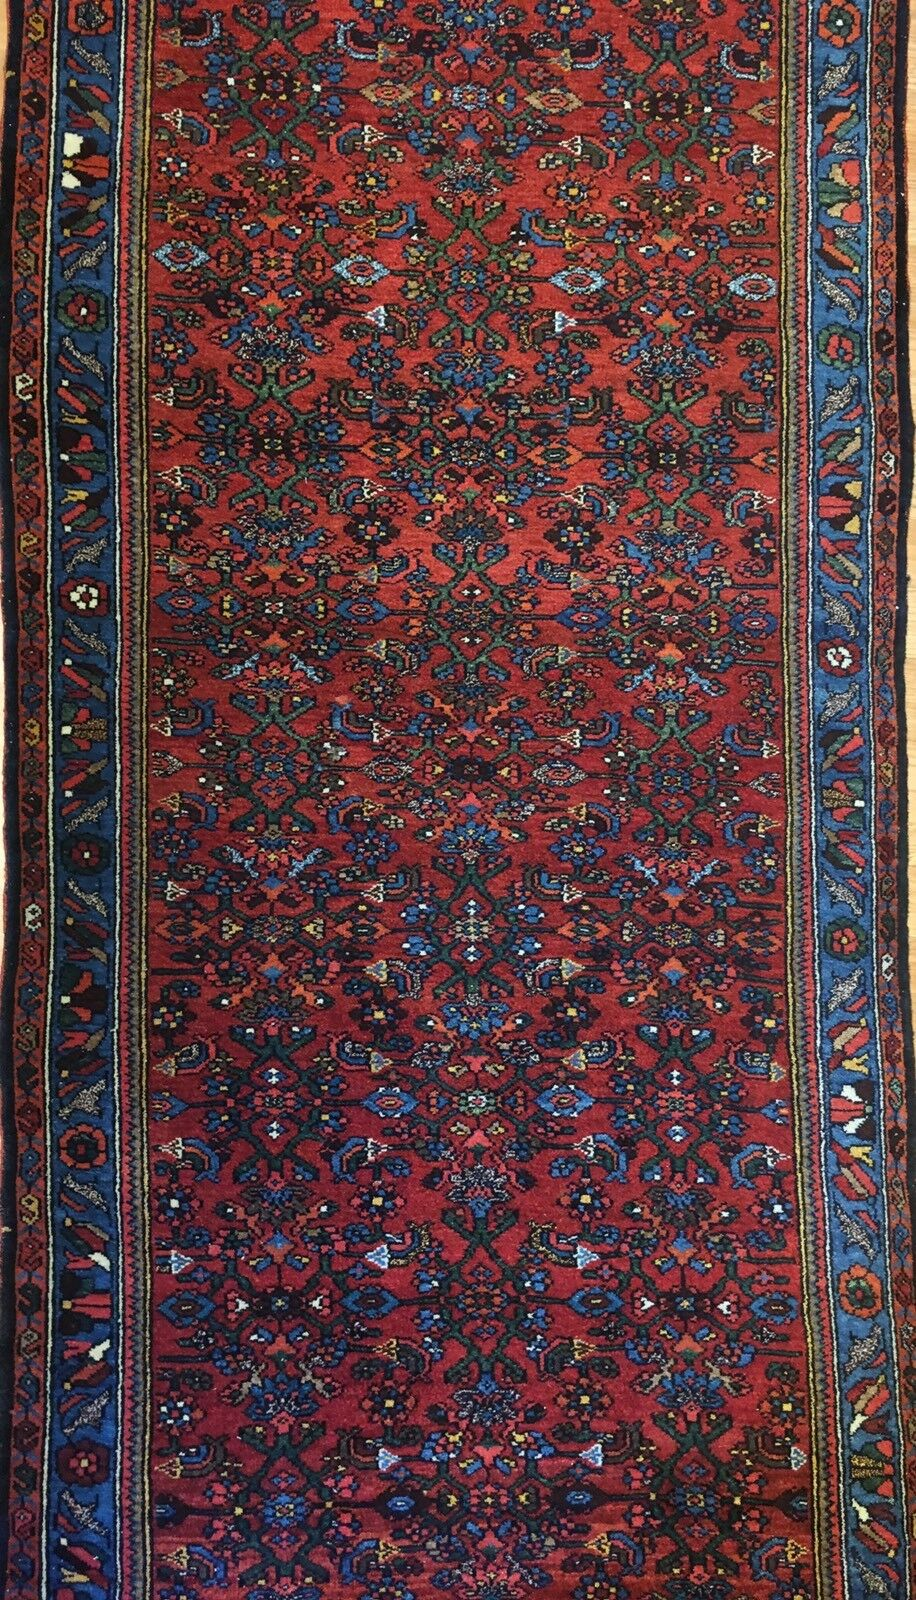 Marvelous Malayer - 1900s Antique Halvai Rug - Tribal Carpet - 2'8